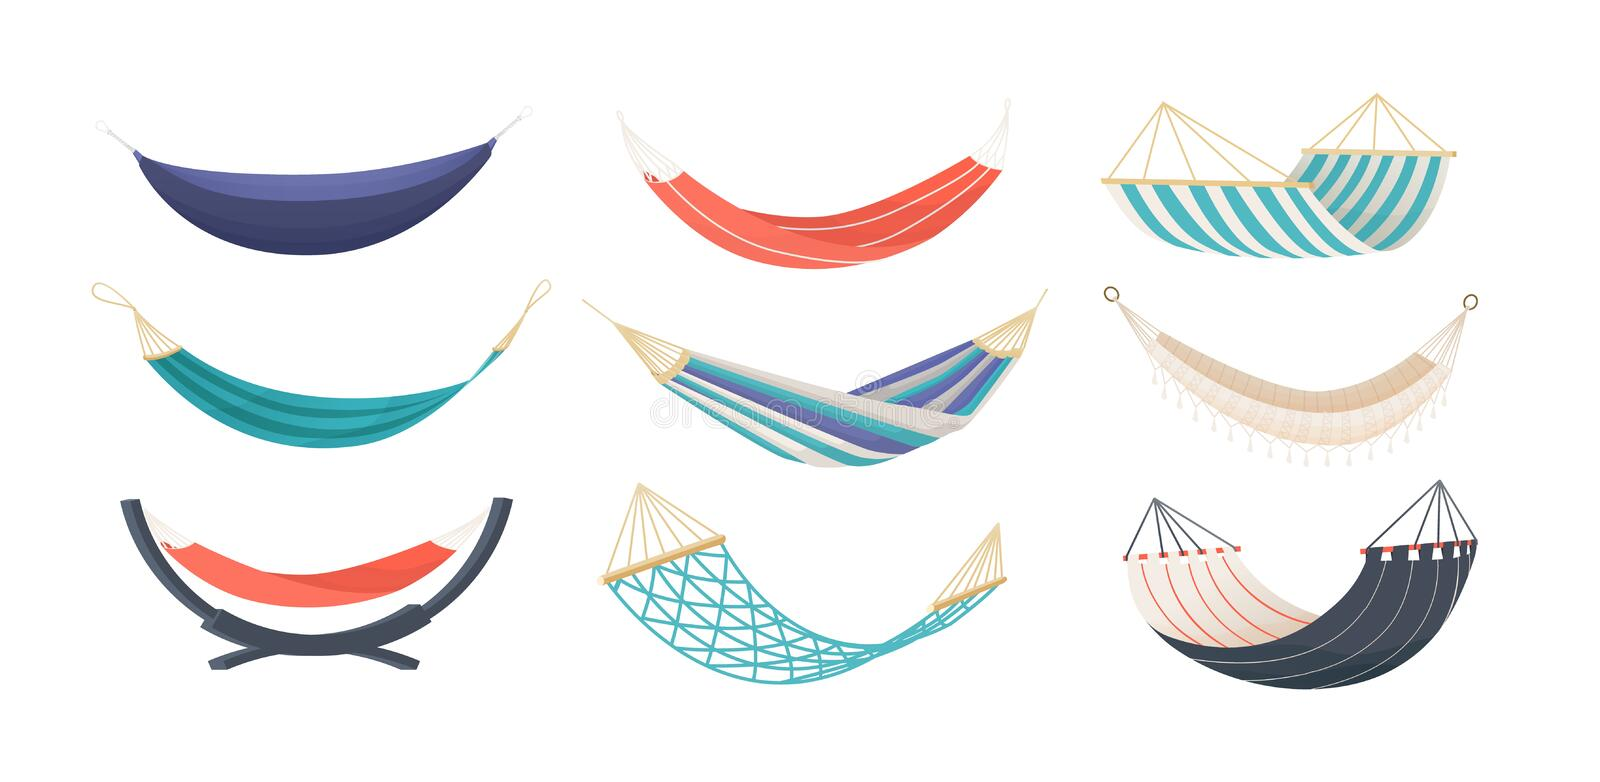 Collection of hammocks of different types isolated on white background. Bundle of tools for summer recreation. Relaxation, swinging, sleeping, resting royalty free illustration